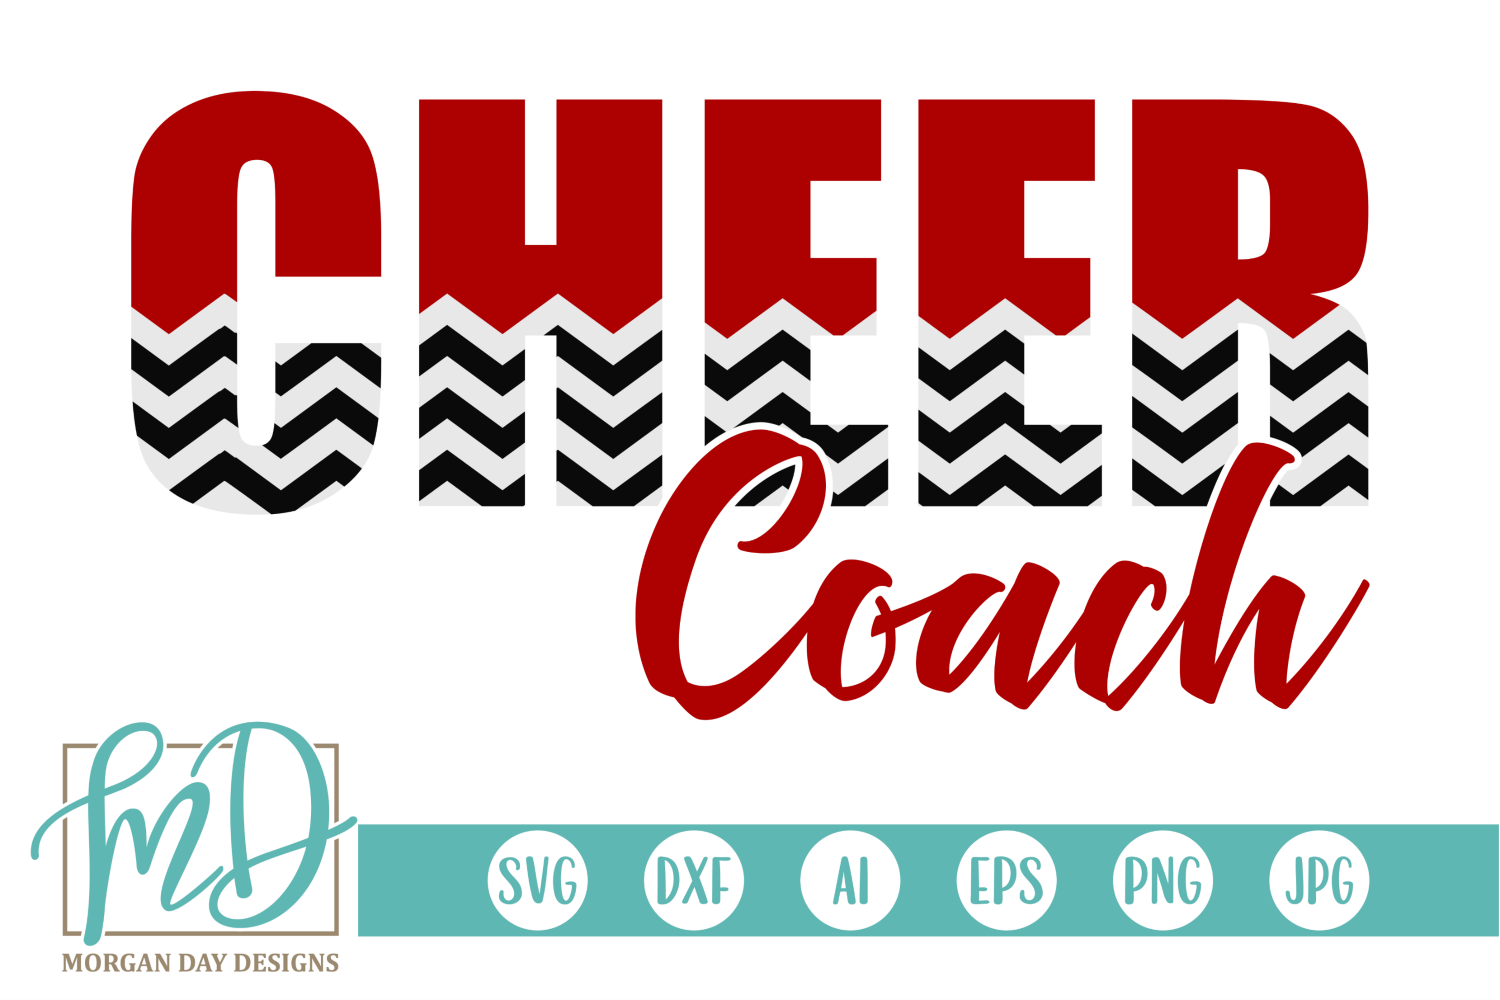 Download Free Cheer Coach Graphic By Morgan Day Designs Creative Fabrica for Cricut Explore, Silhouette and other cutting machines.